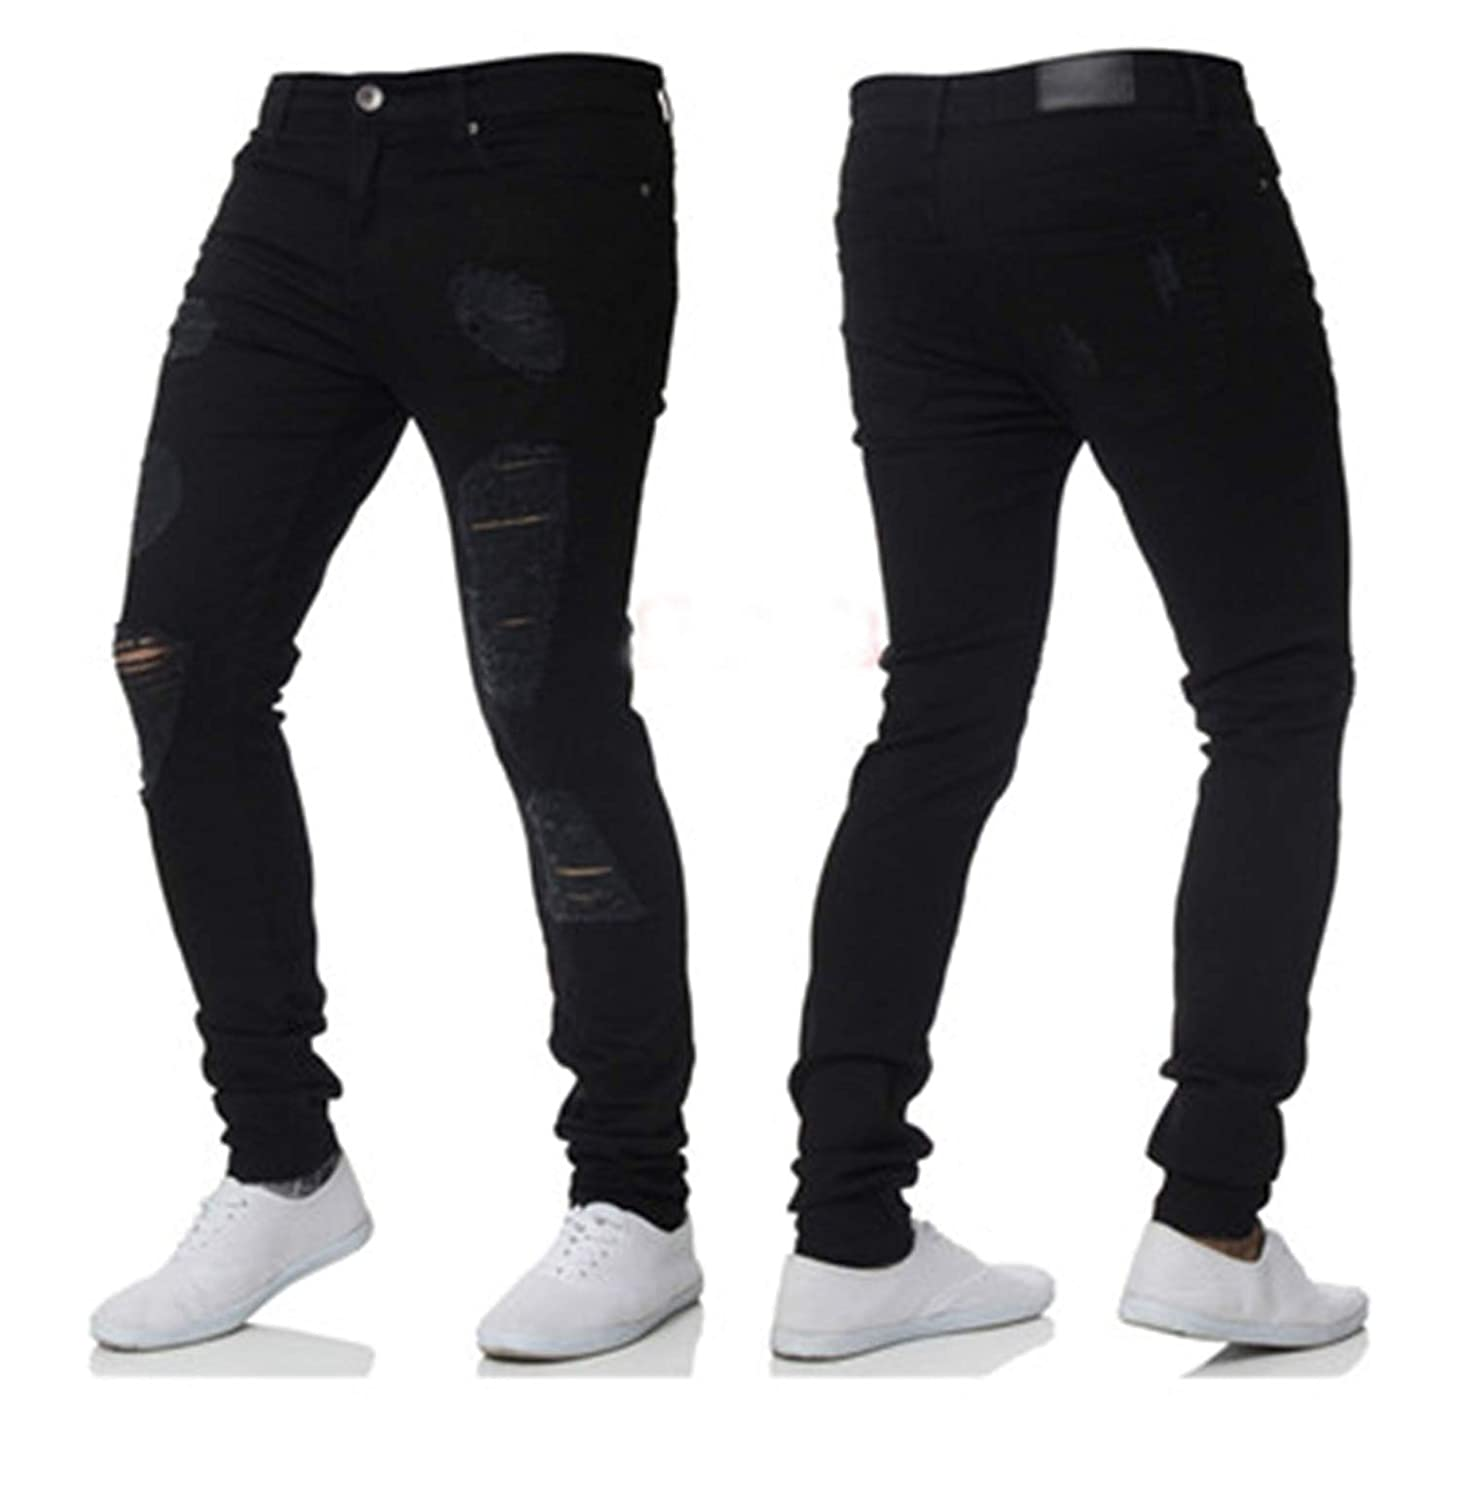 George Gouge Skinny Jeans Pants Stretch Destroyed Ripped ...